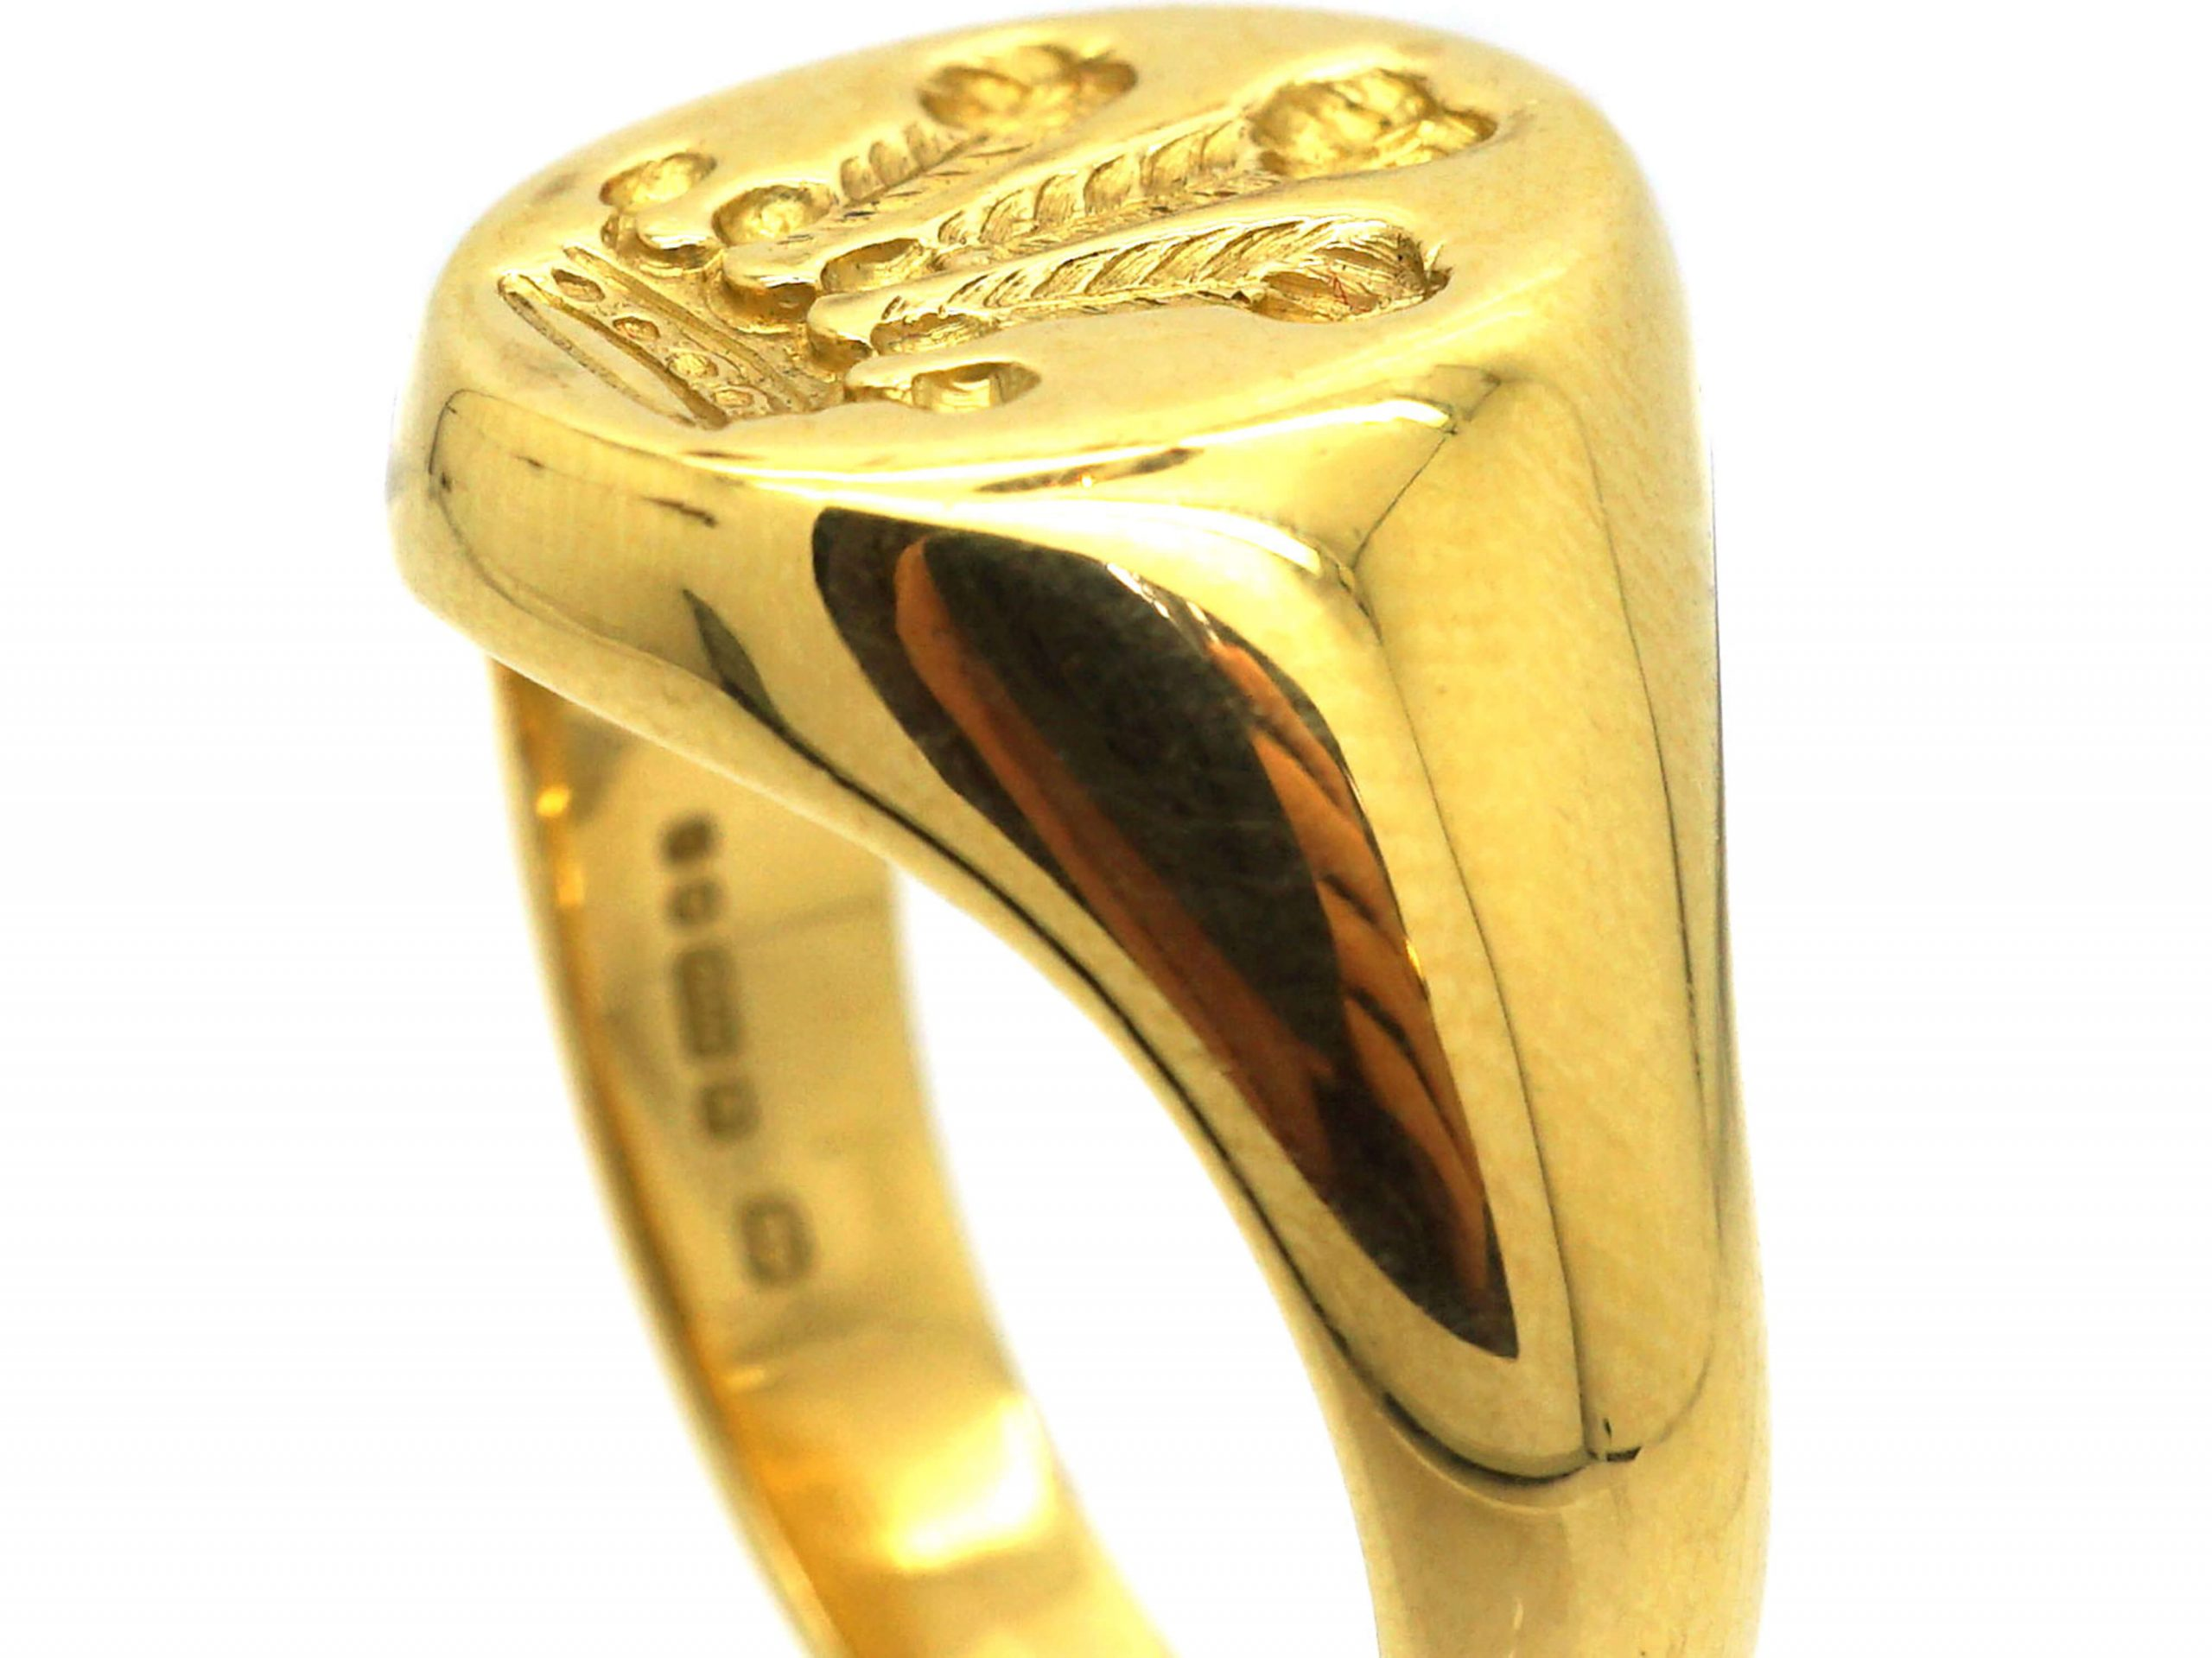 18ct Gold Signet Ring with Intaglio of Prince of Wales Feathers by Theo Fennell